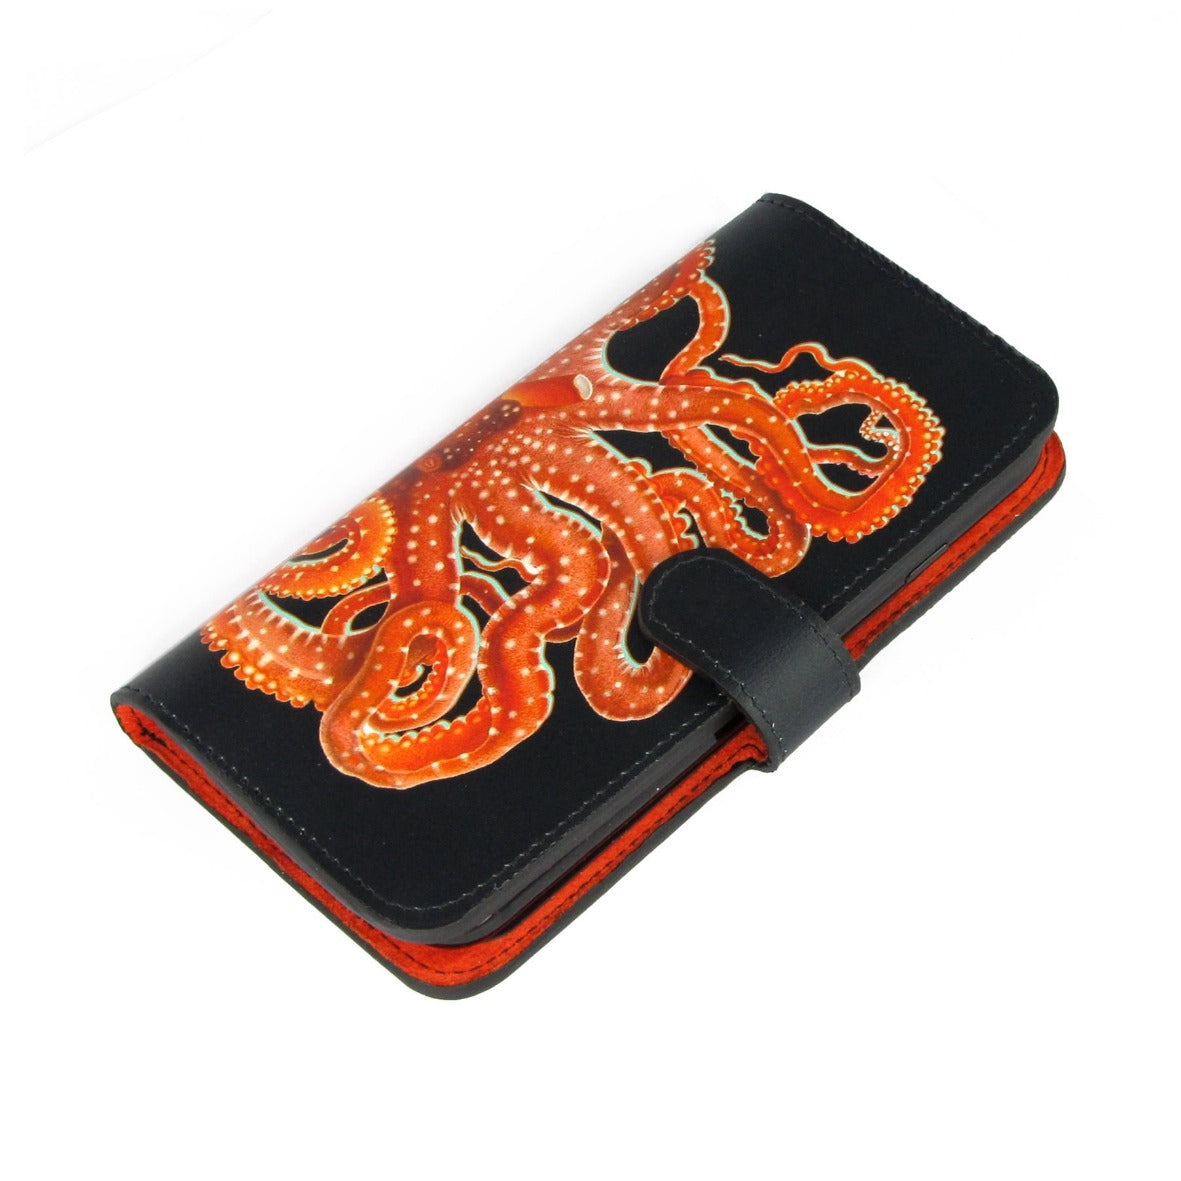 Black & orange case - leather samsung case - leather protective case - leather flip case - leather iphone case - iphone x wallet case - phone wallets - Octopus mobile phone wallet